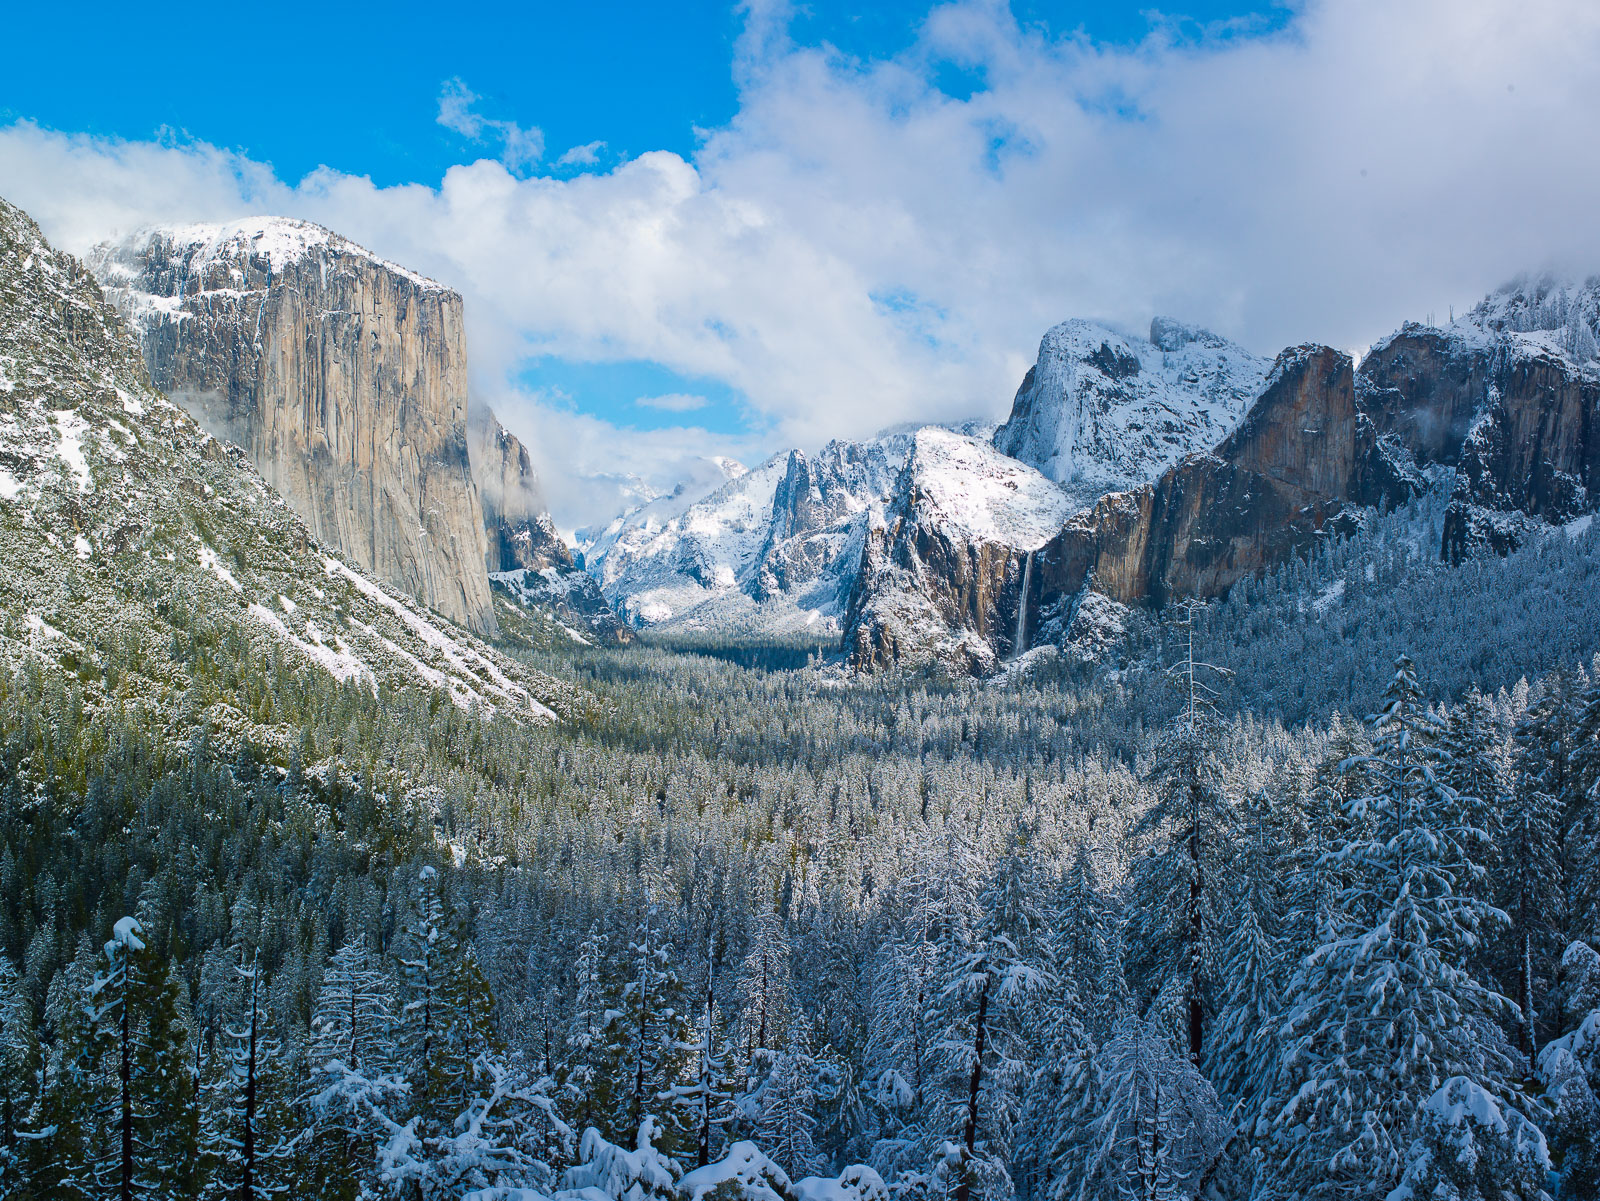 Snowcapped Capitan,California,Horizontal,Mountains,Yosemite National Park,blue,landscape,winter, photo